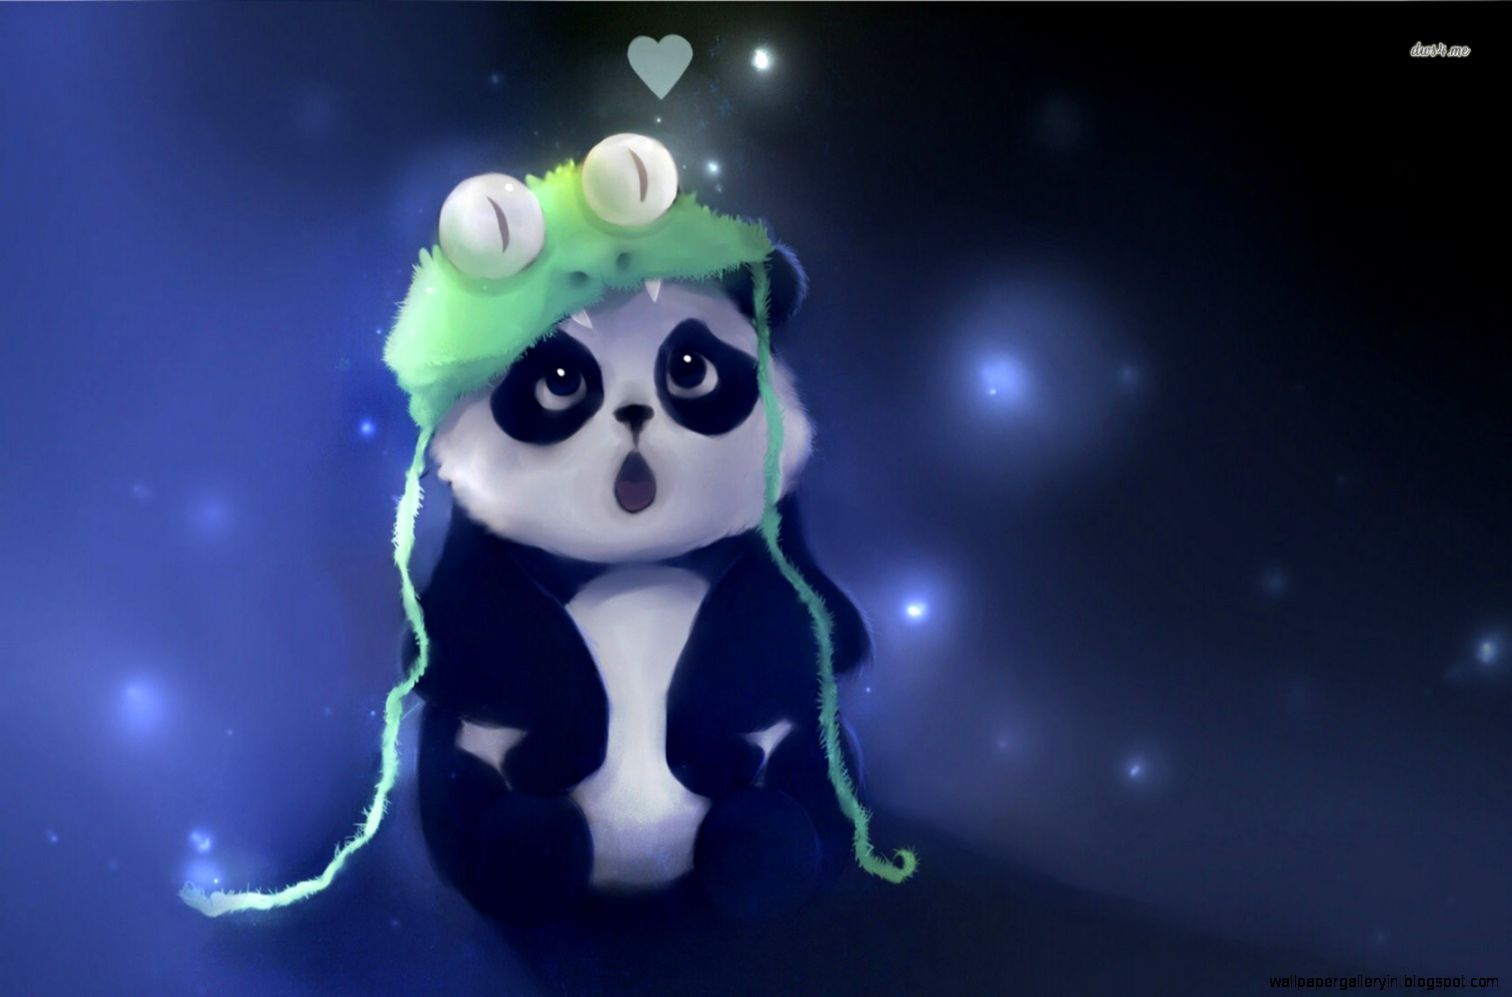 Cute Baby Panda Artwork Wallpaper | Wallpaper Gallery